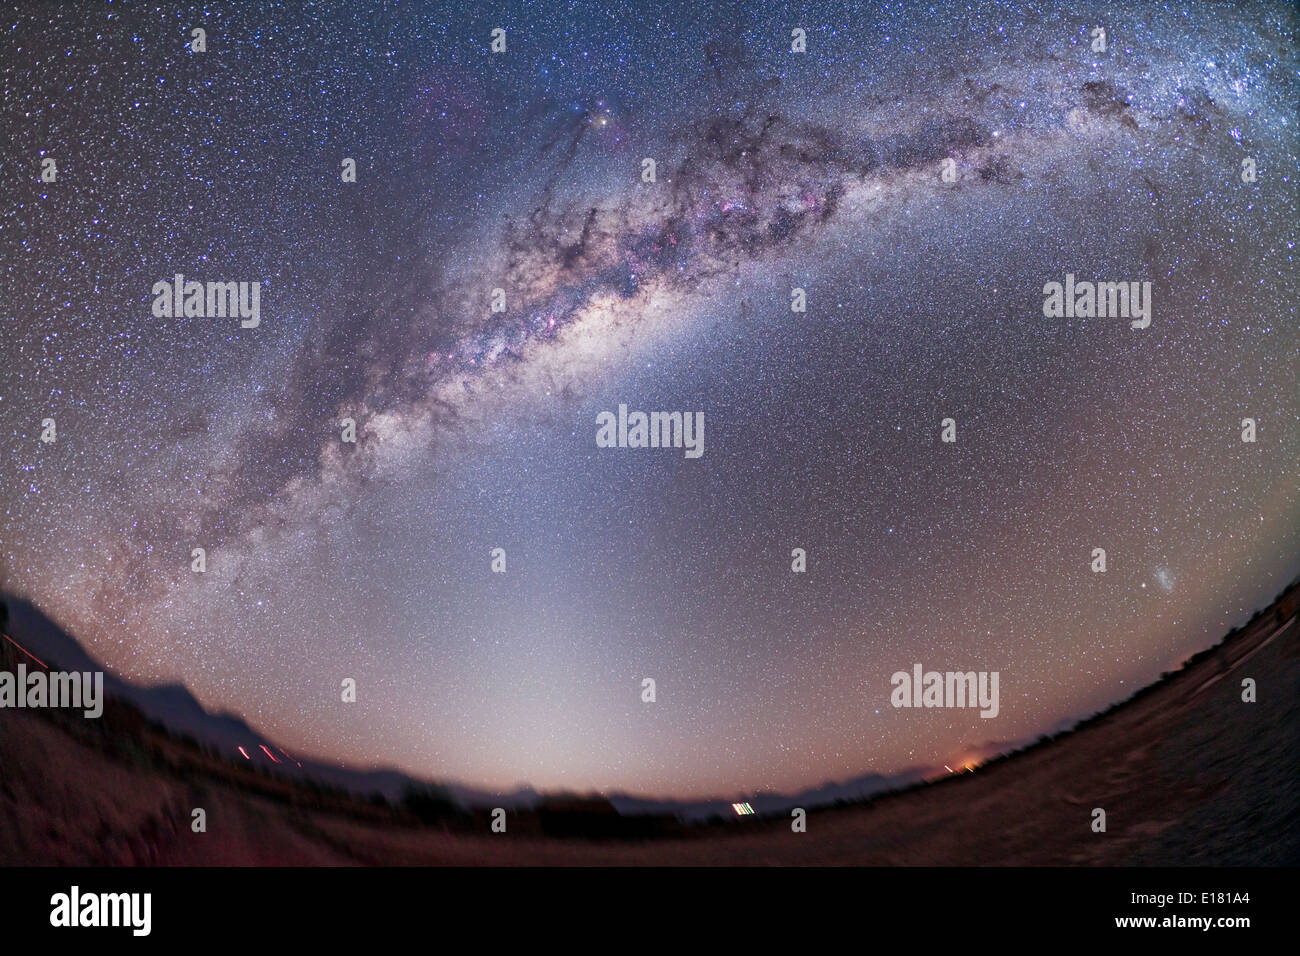 Southern Milky Way from Atacama Lodge, Chile (latitude 23° S) taken March 14/15, 2010 - Stock Image